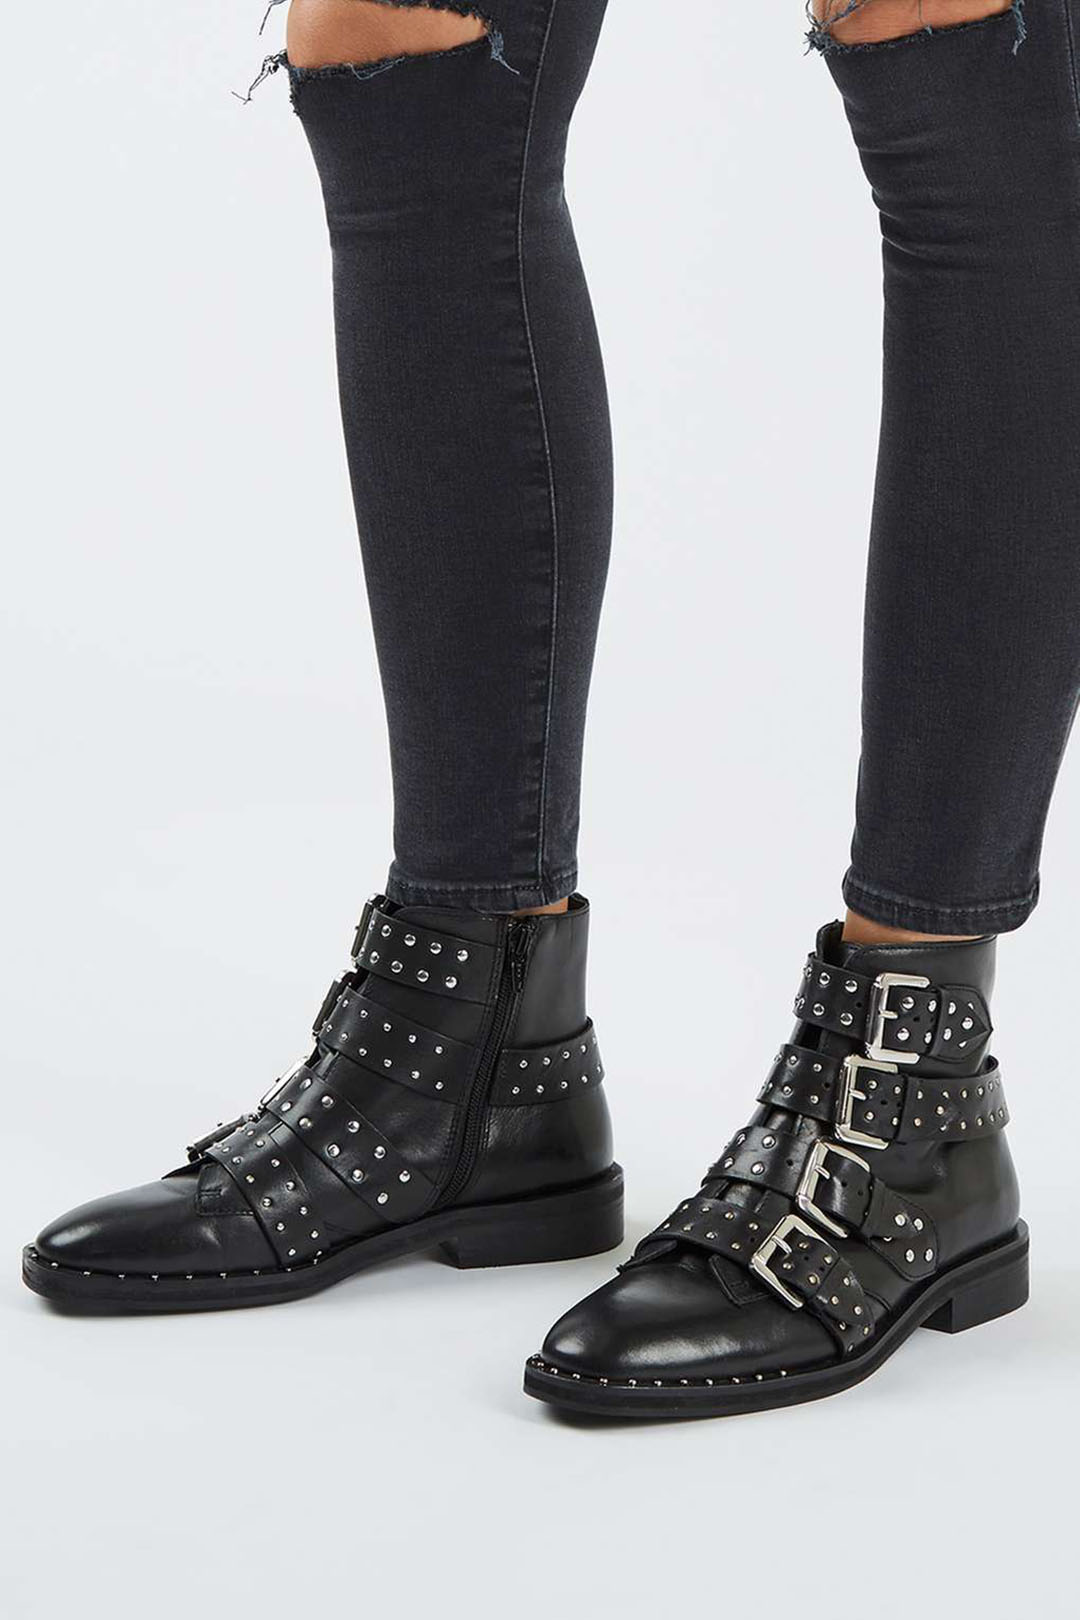 boots_cloutee_amy_topshop_givenchy